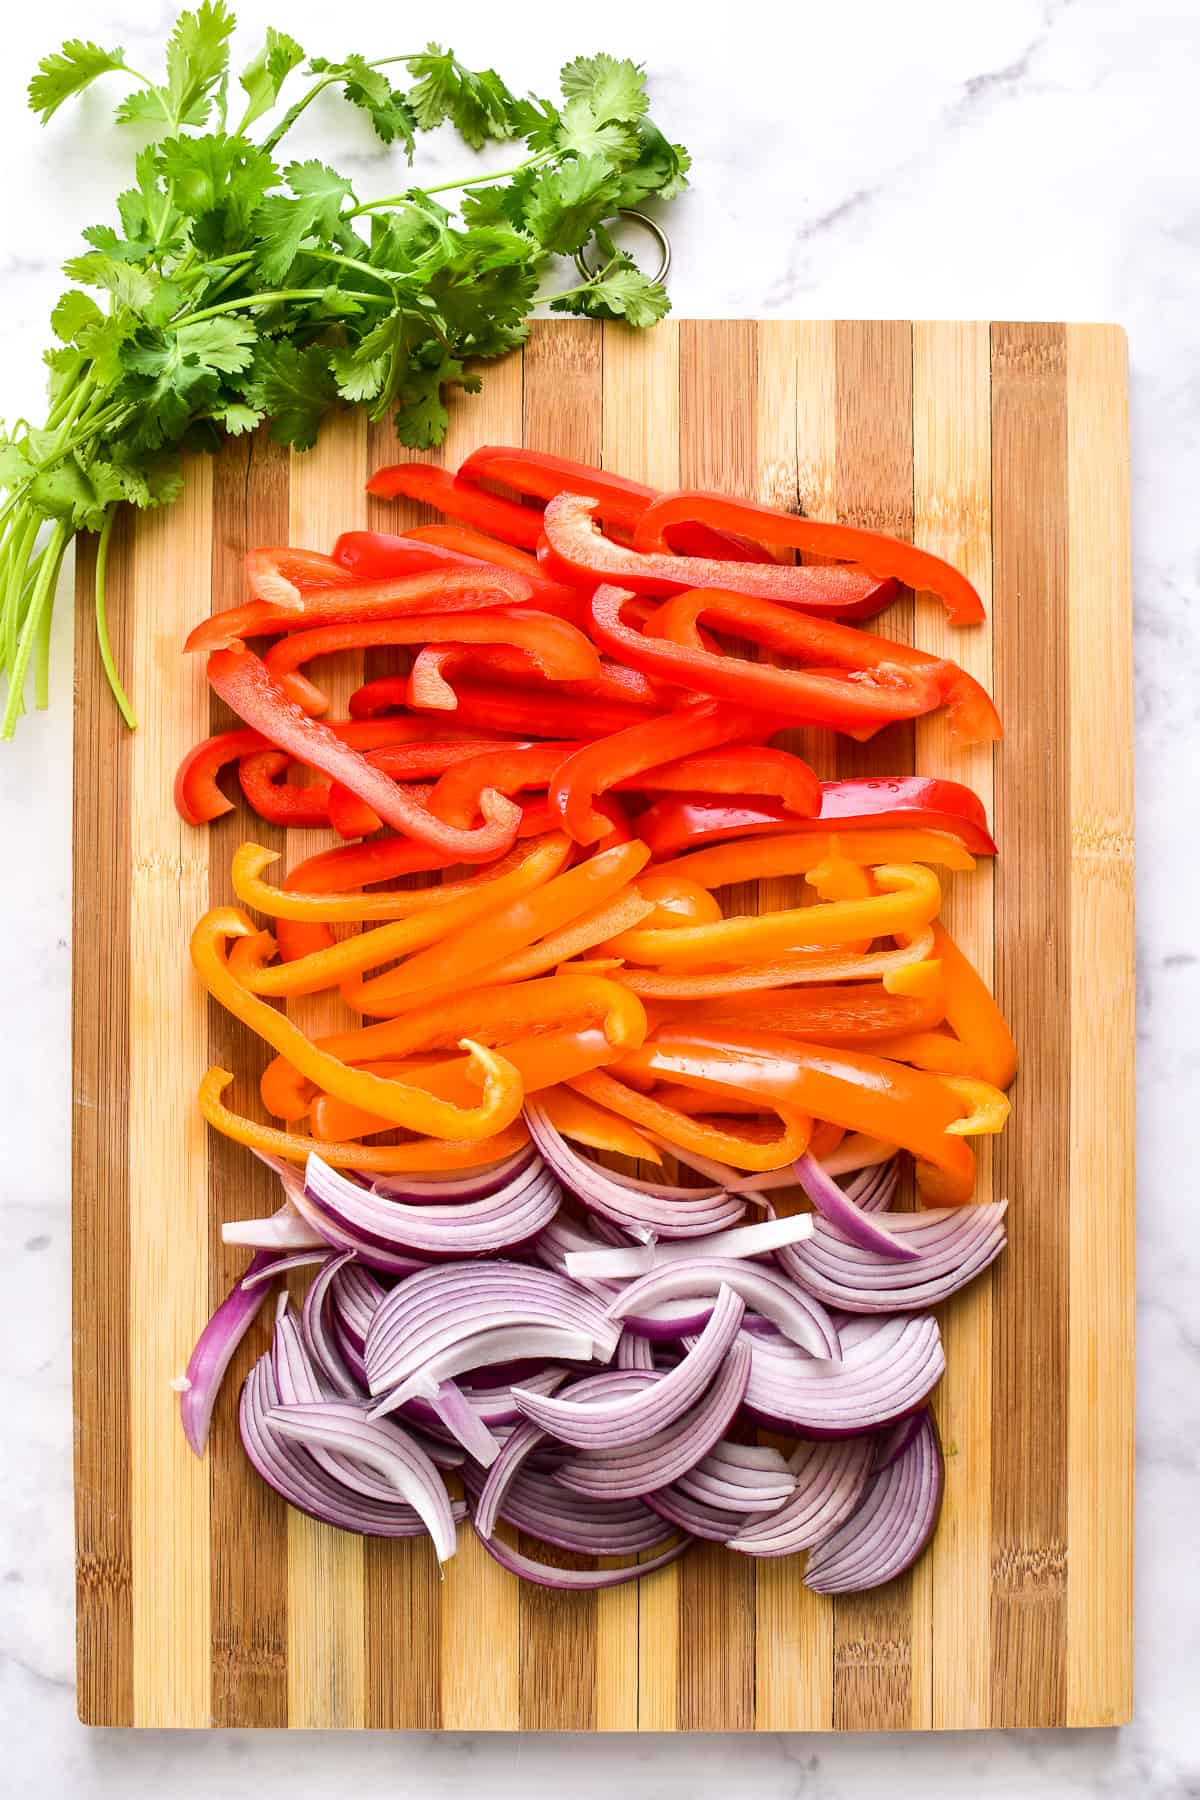 Sliced peppers and onions for fajitas